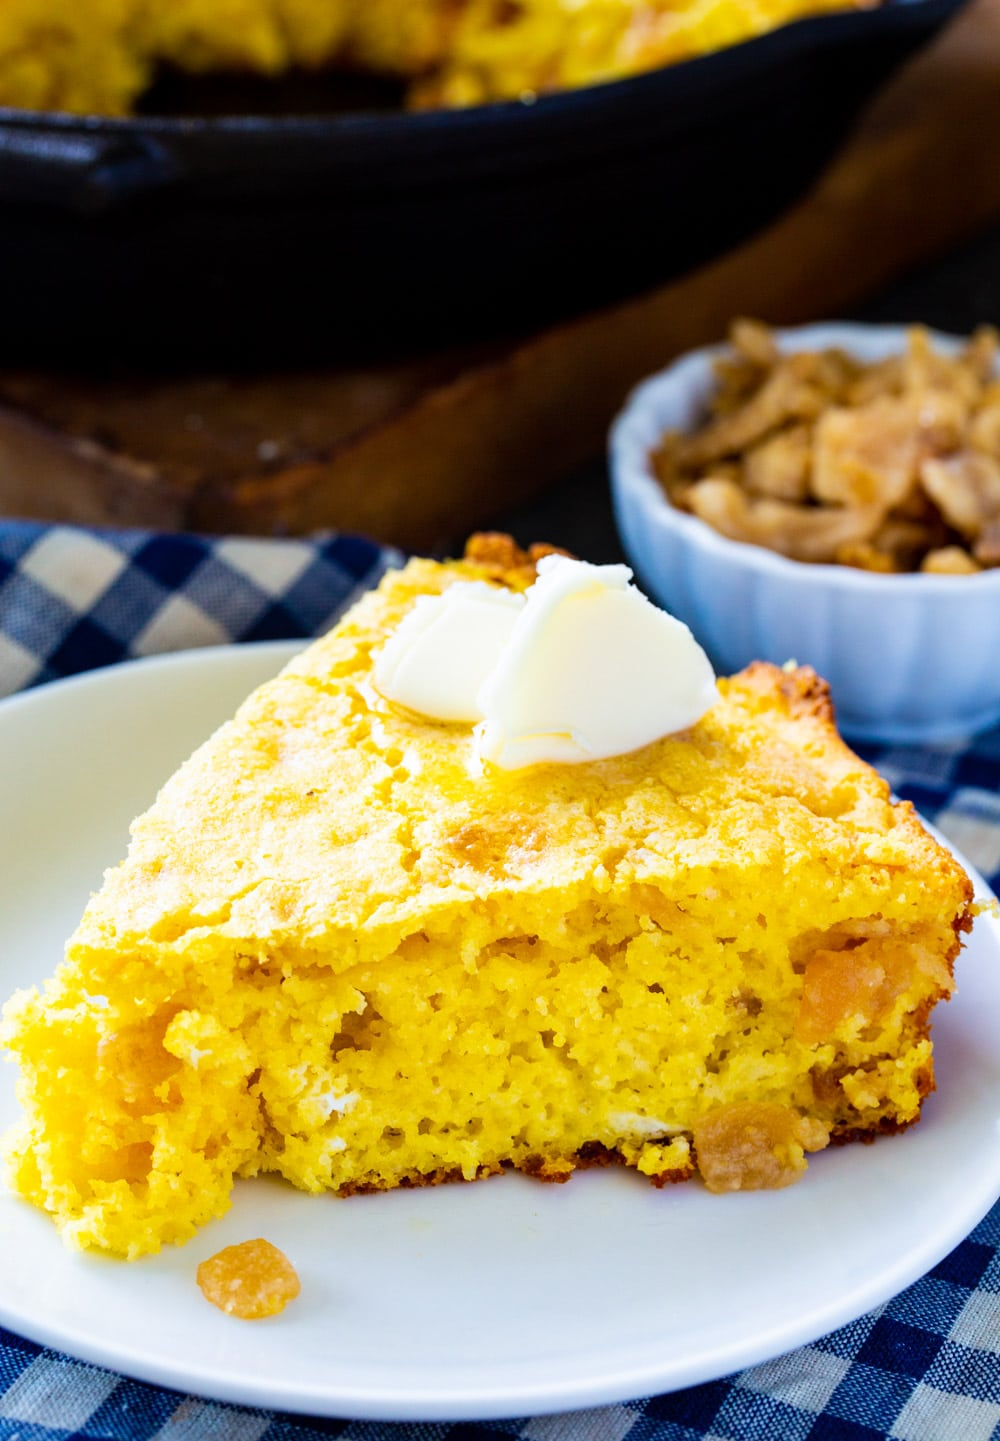 Cornbread with cracklings on a plate.